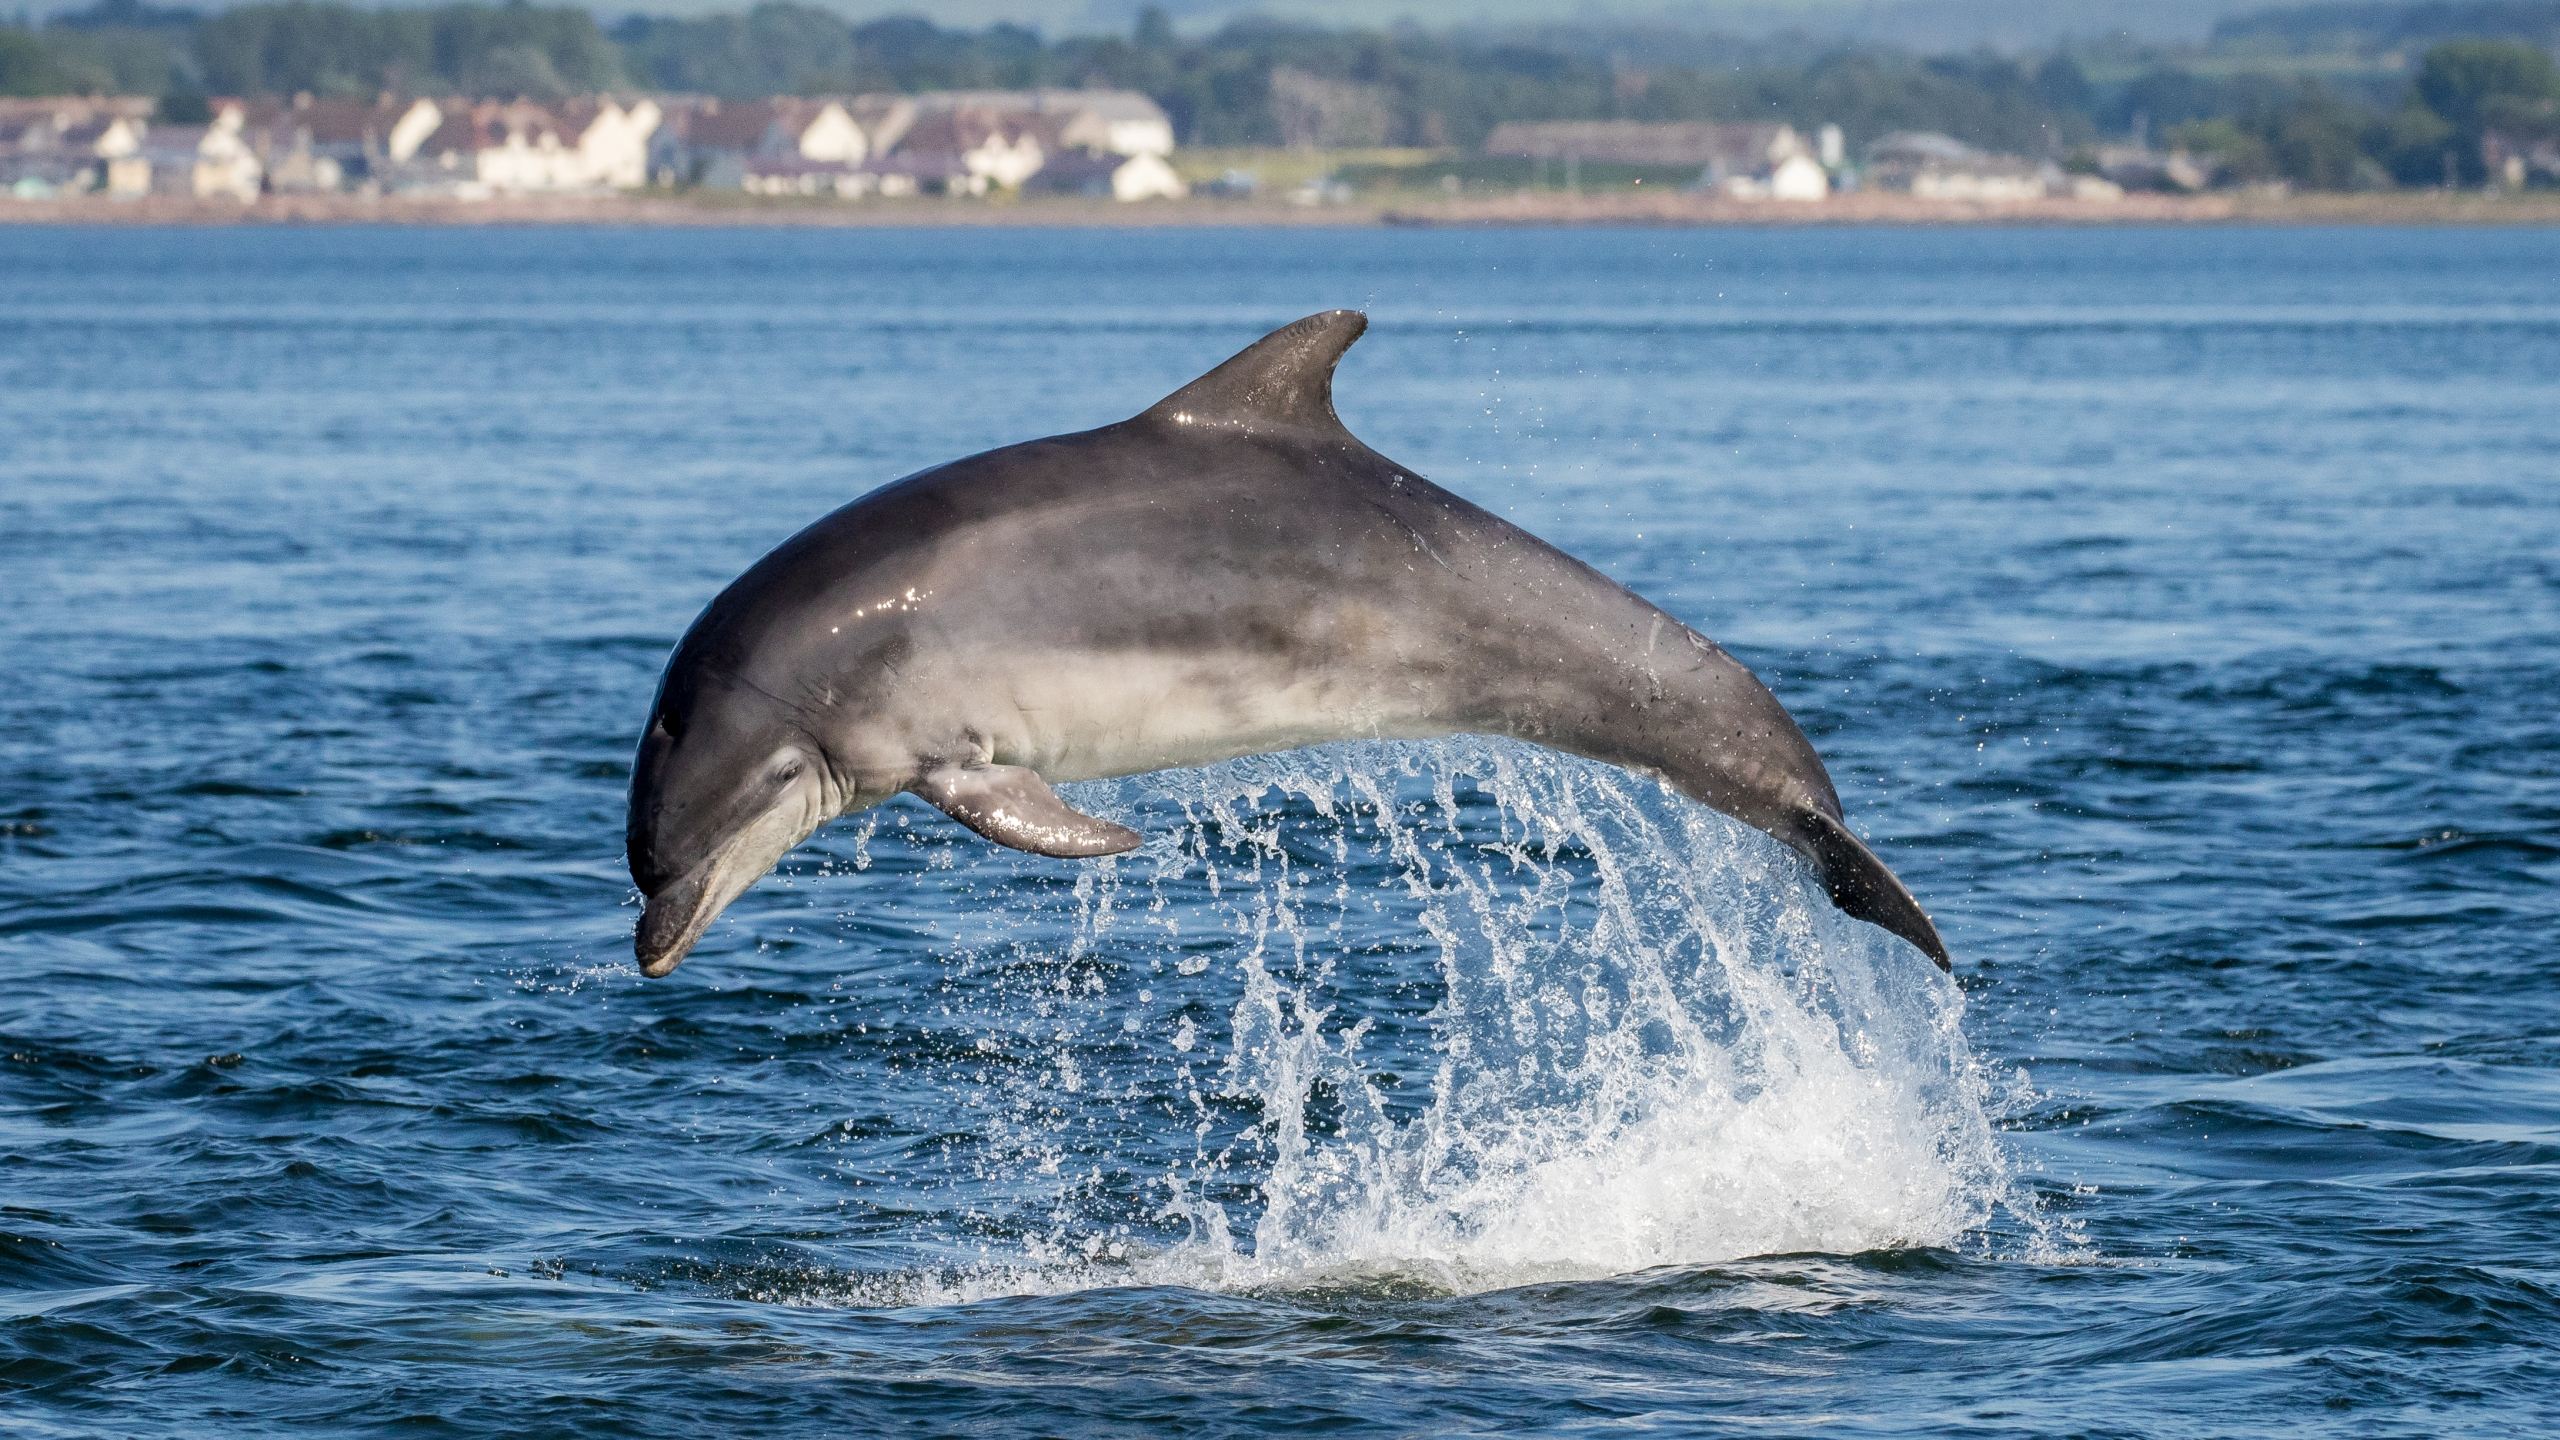 A bottlenose dolphin is seen in a file photo. (Credit: iStock / Getty Images Plus)